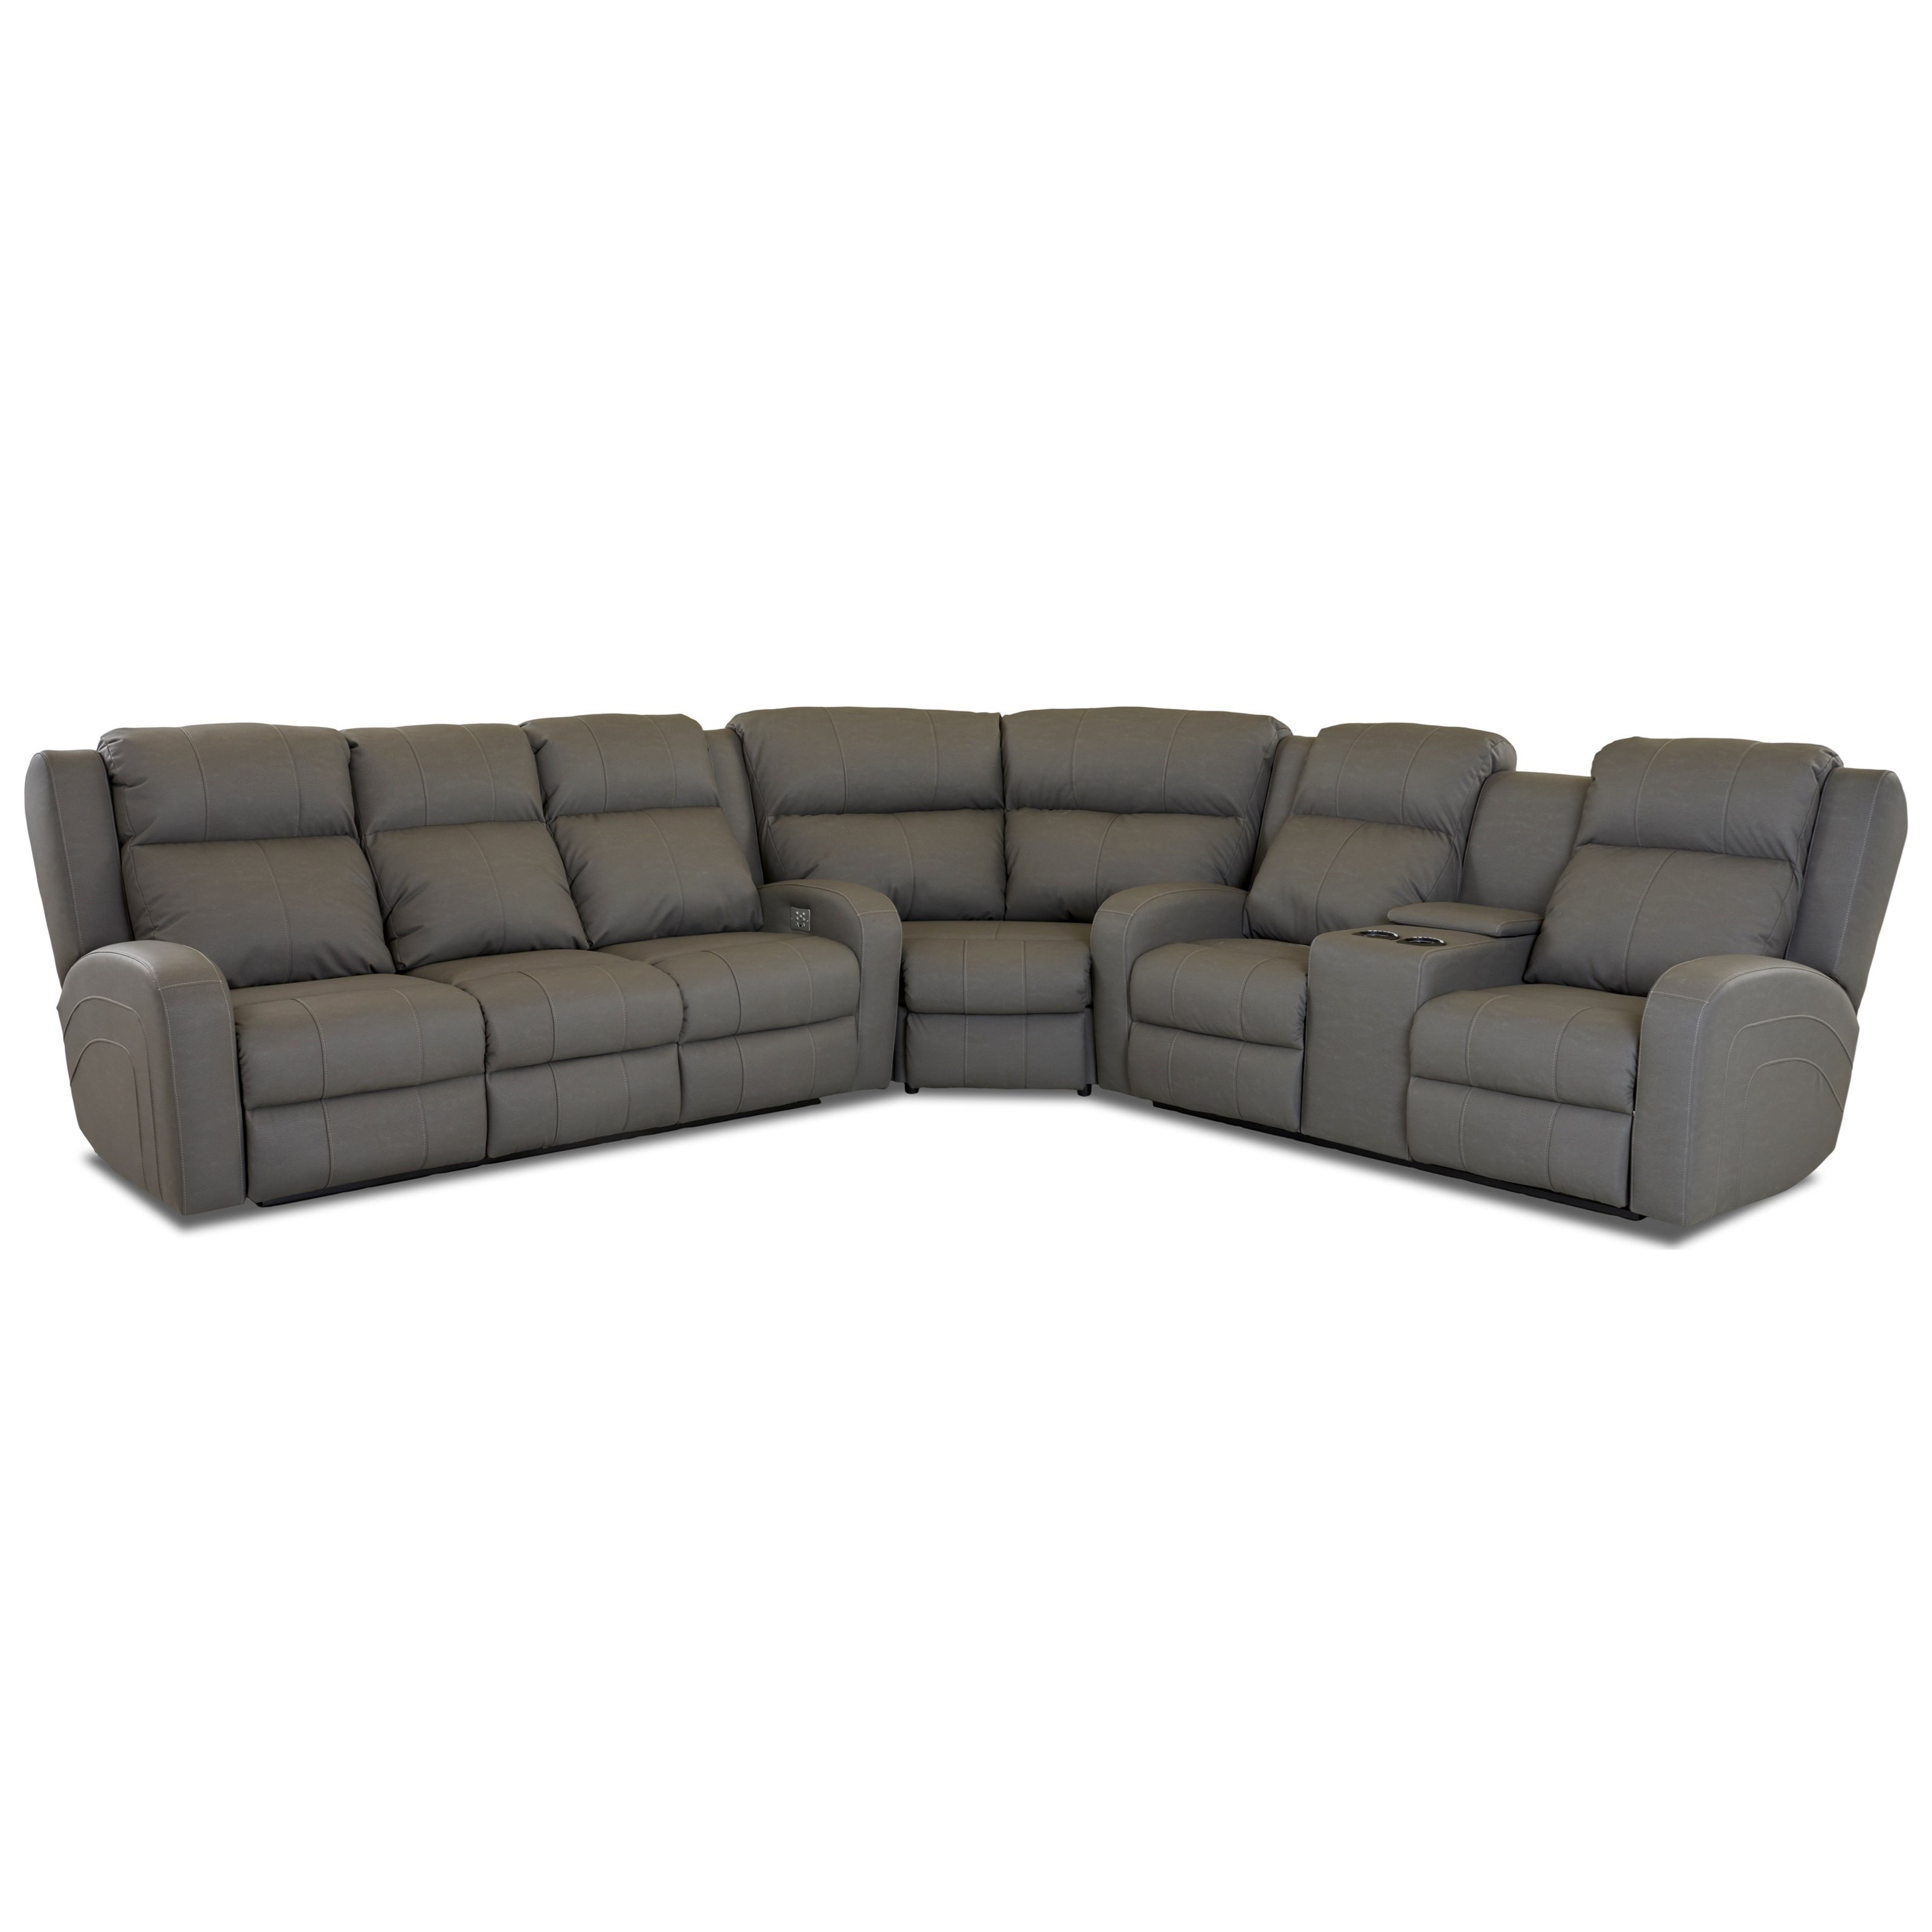 Klaussner Robinson Casual Three Piece Reclining Sectional Sofa ...